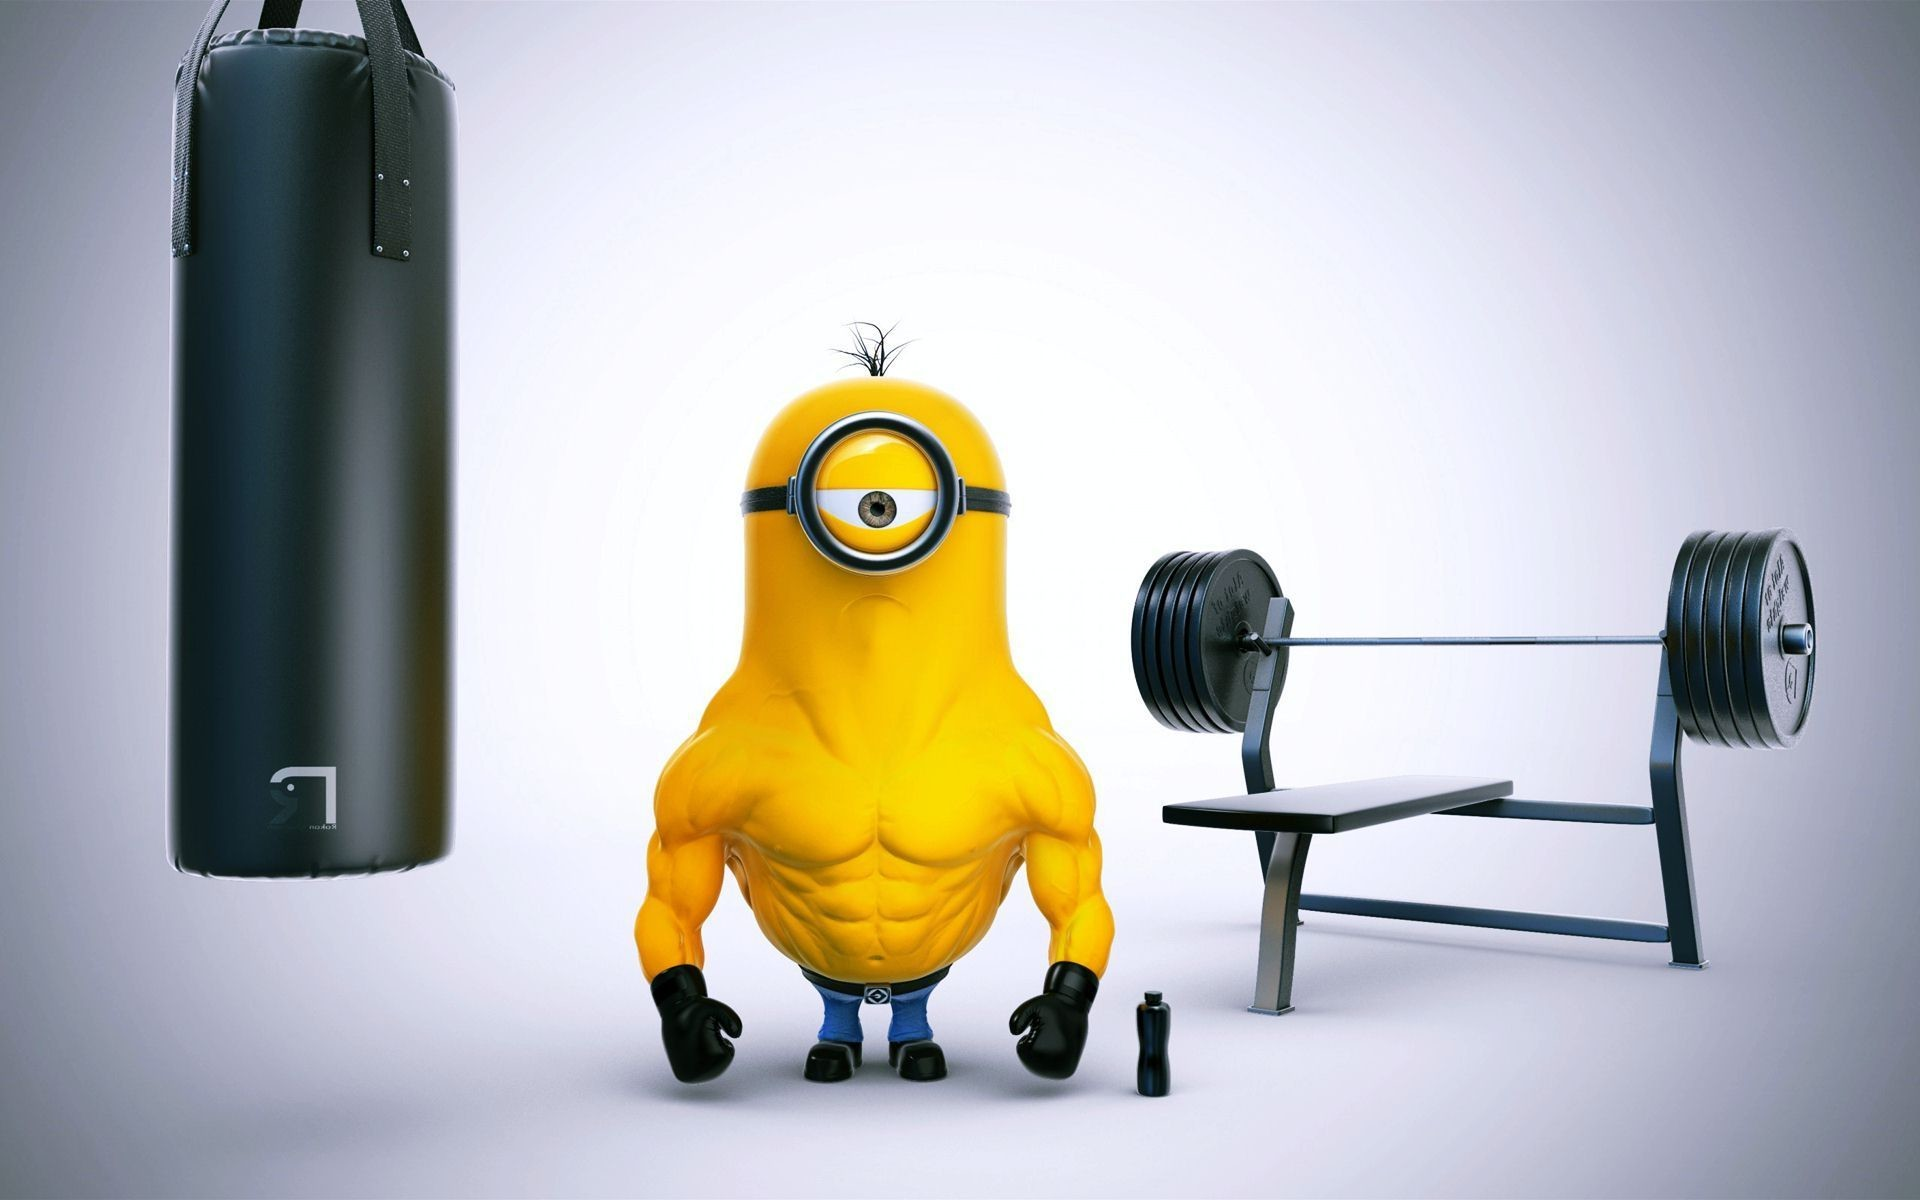 1920x1200 Cute-Minion-Wallpapers-HD-for-Desktop-41.jpg